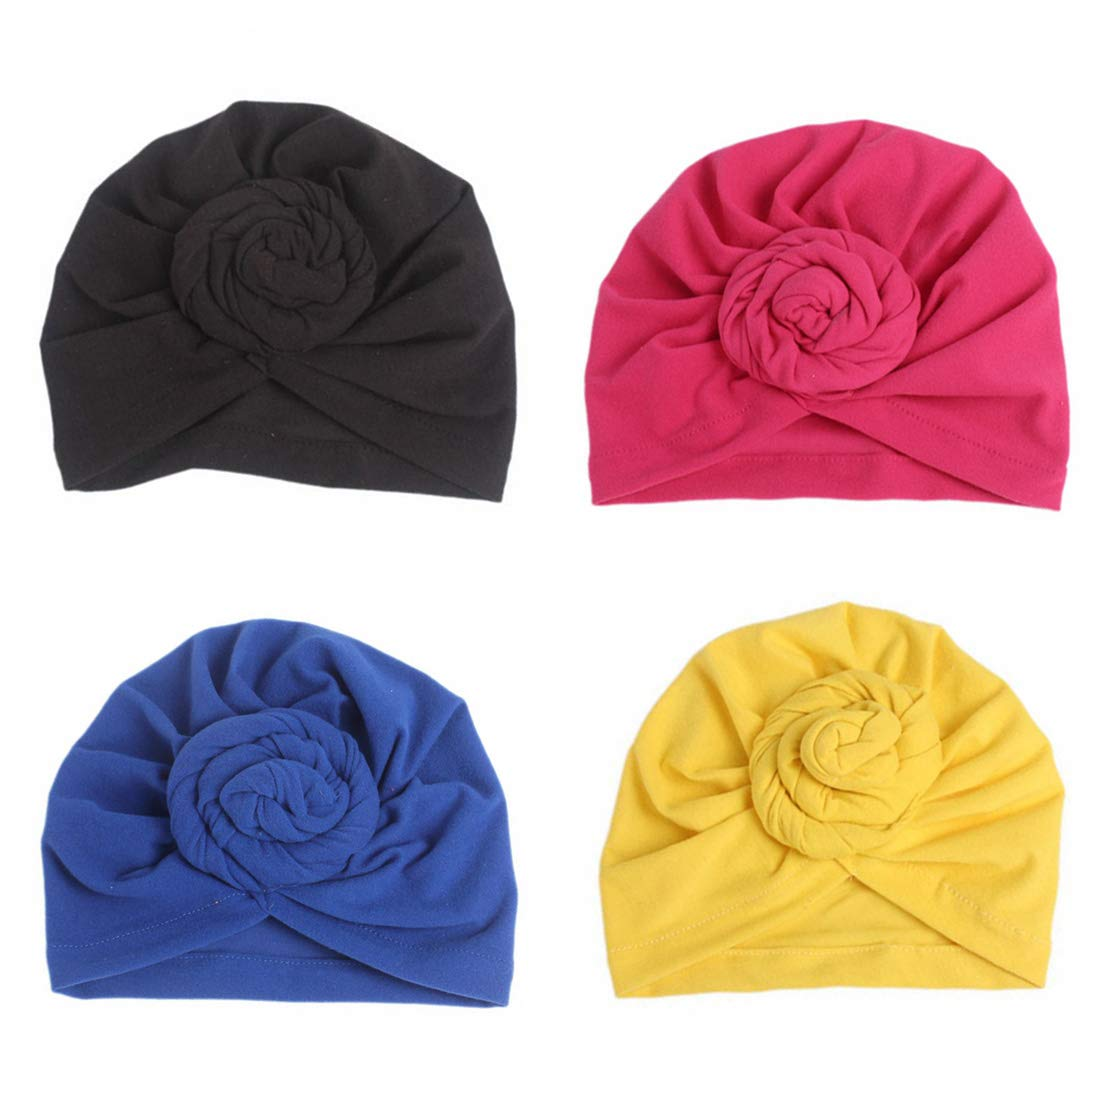 1Pack/2Packs/4Packs Women Turban African Pattern Knot Headwrap Beanie Pre-Tied Bonnet Chemo Cap Hair Loss Hat by BOBIBI